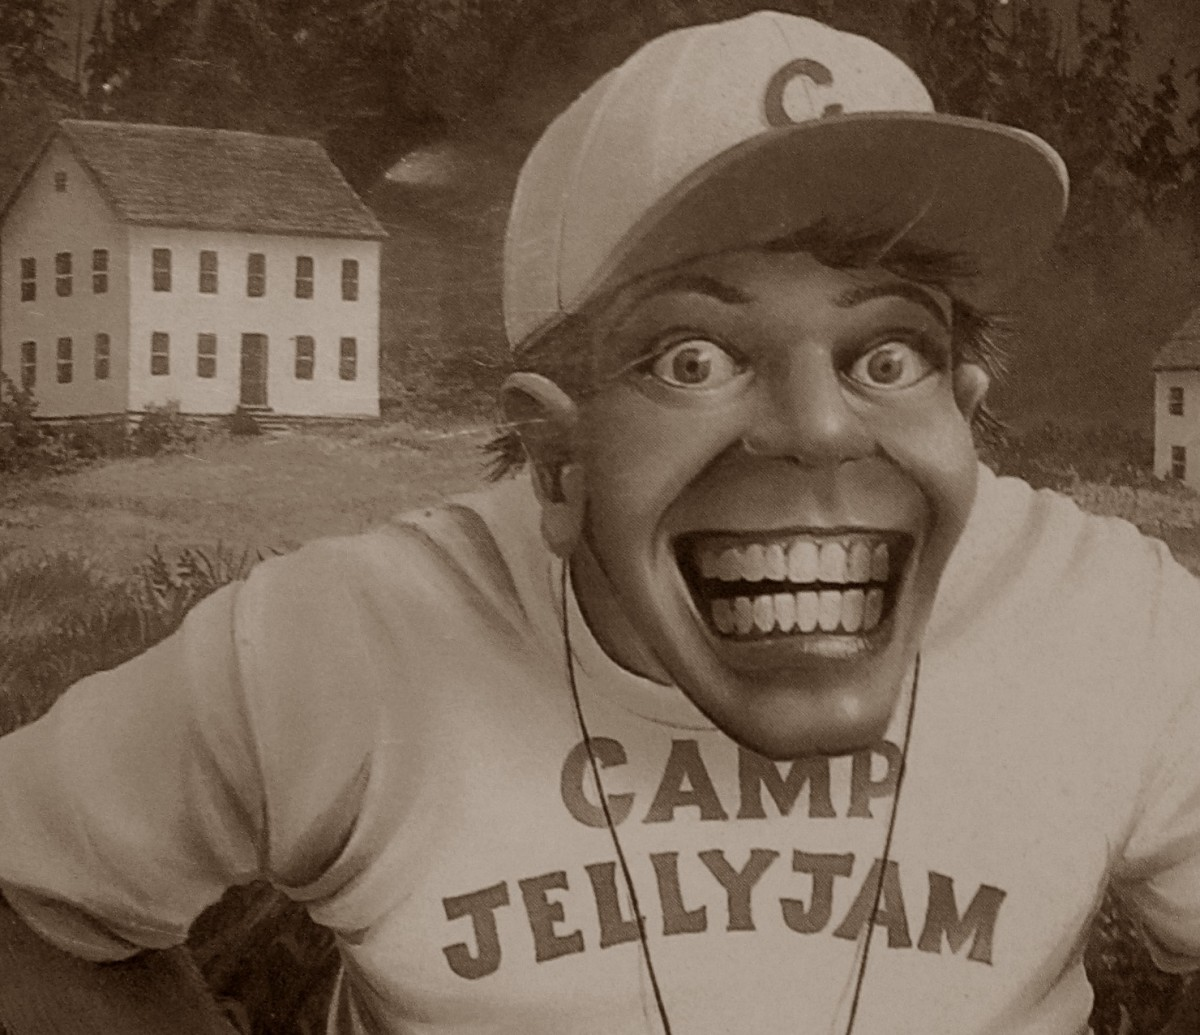 """Camp Jellyjam"" counselor poses for smiling photo on the cover of Goosebumps #33!"